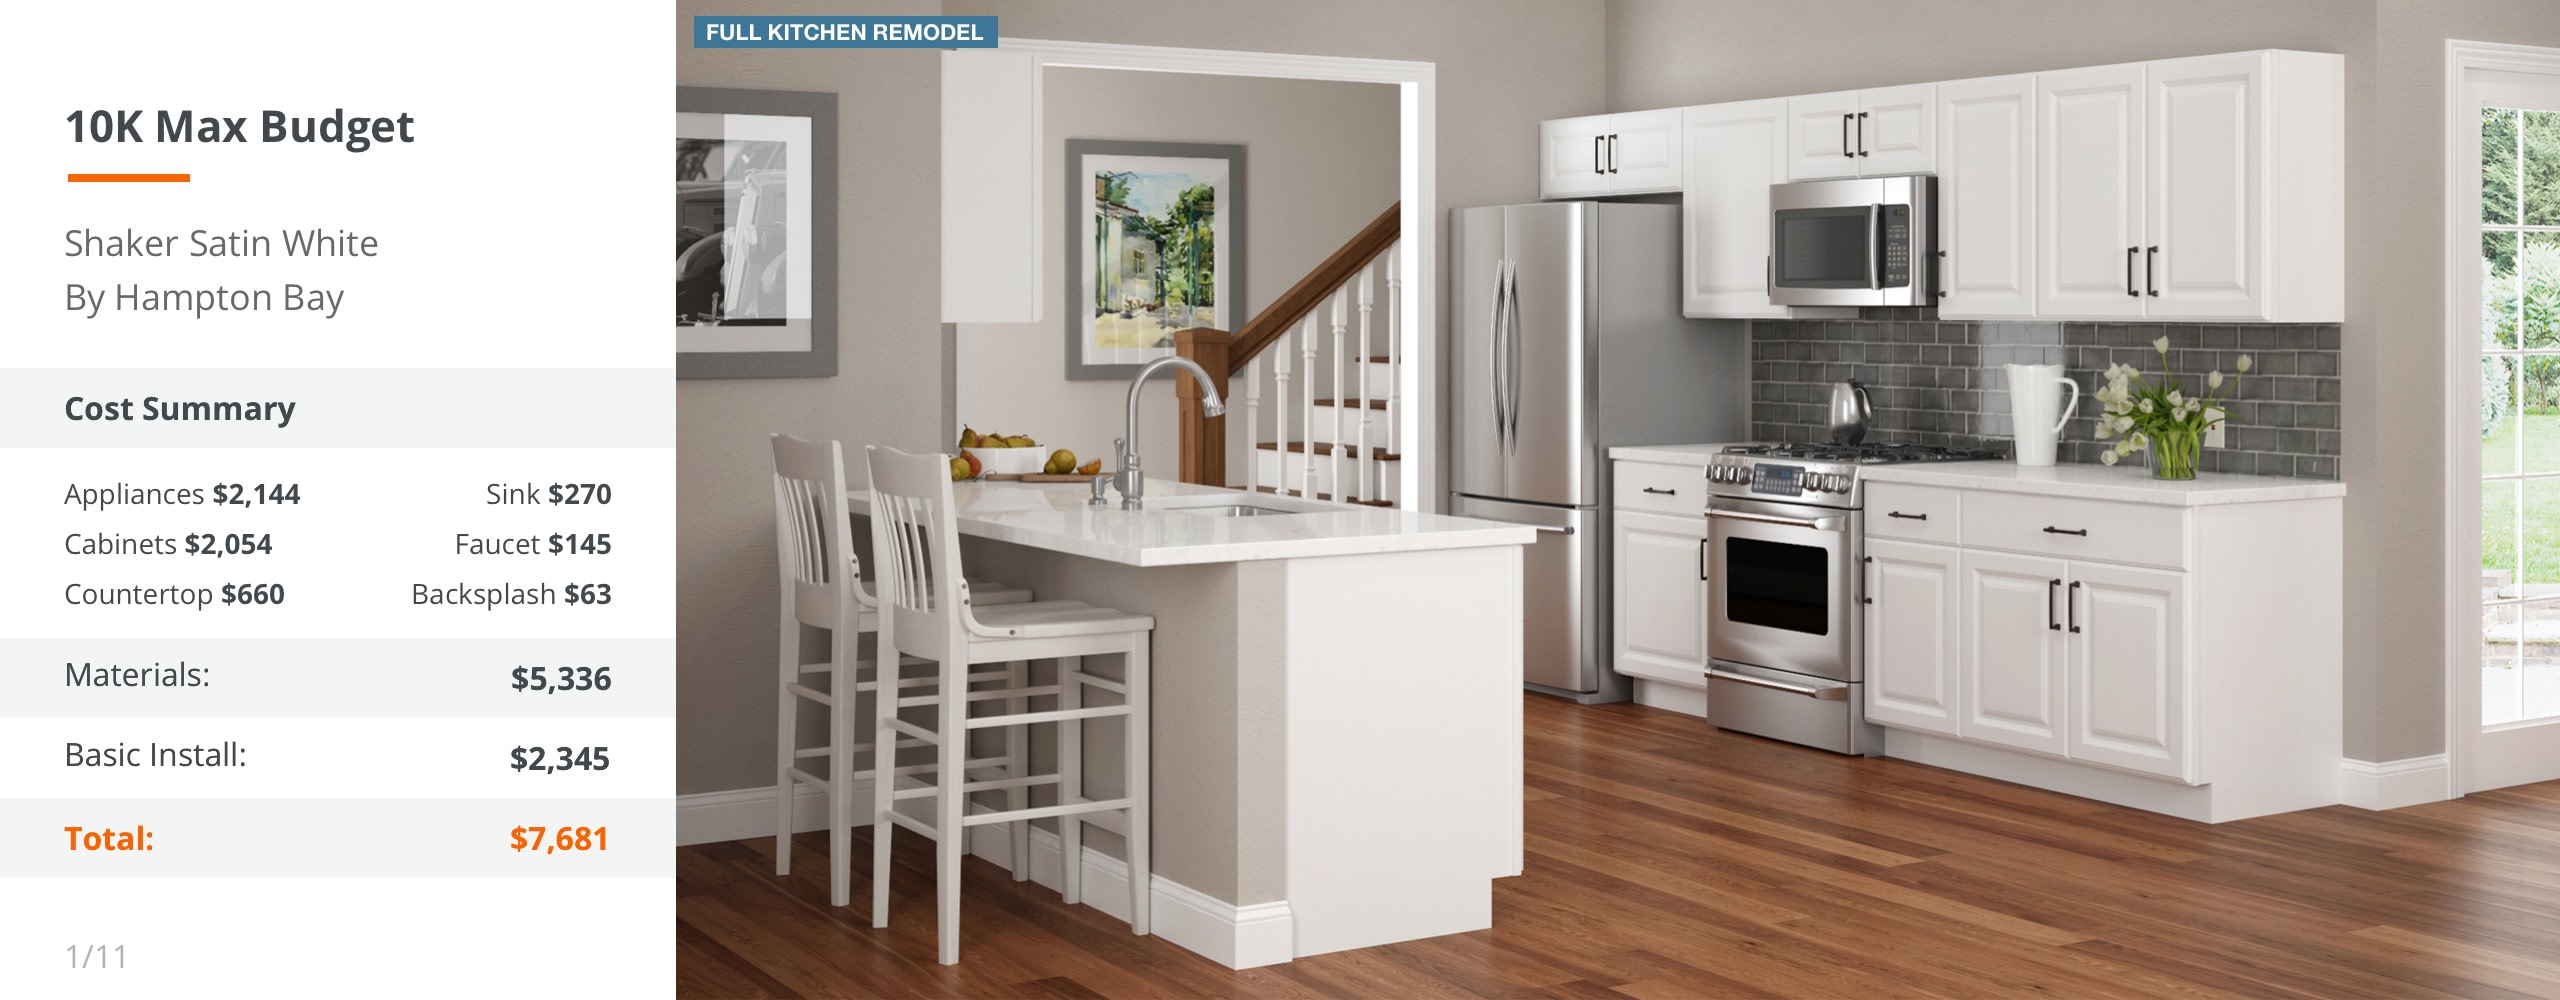 Kitchen Design Services At The Home Depot